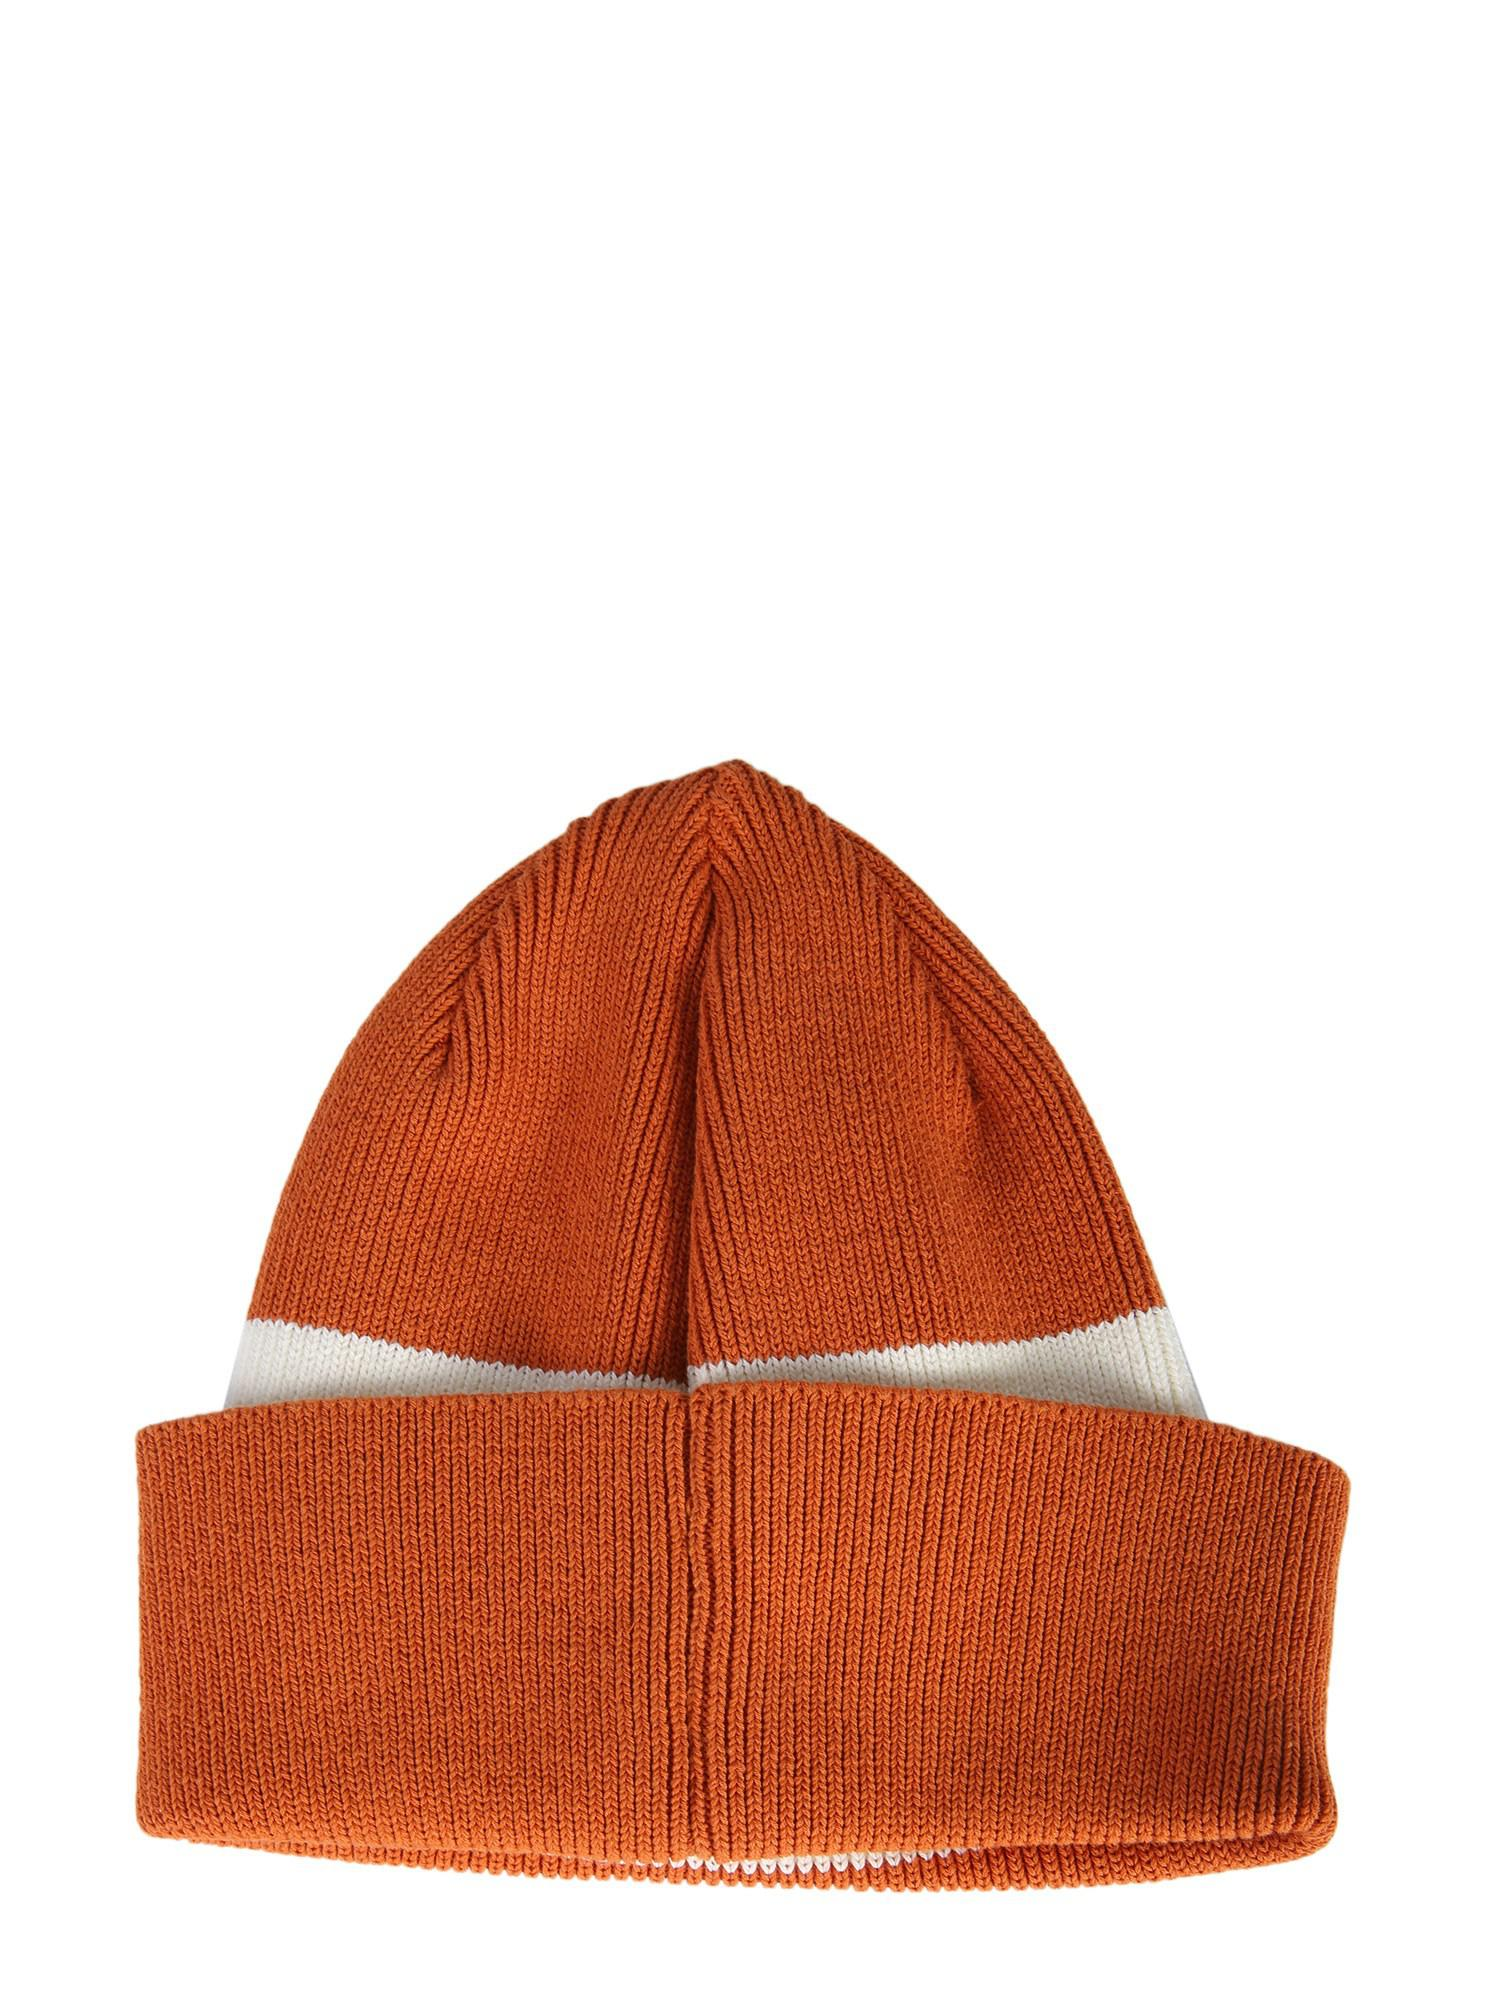 ca216ab2abff5 Golden Goose Deluxe Brand Baby Syrma Cap In Cotton in Orange - Lyst